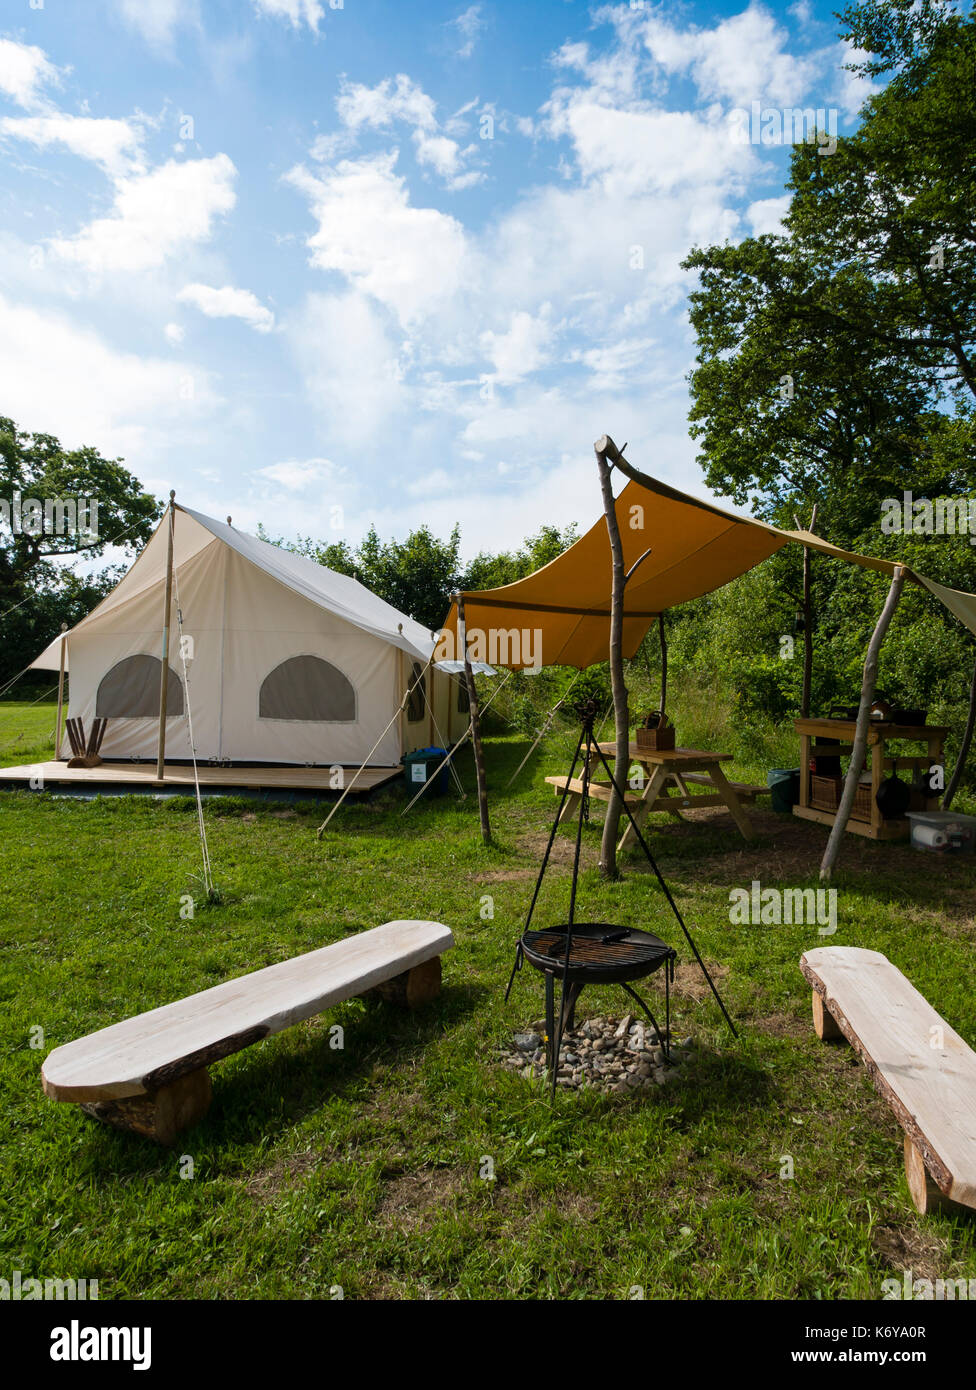 Top of the Woods Glamping and Campsite, Penrallt Farm, Boncath, Pembrokeshire, Wales, UK. - Stock Image